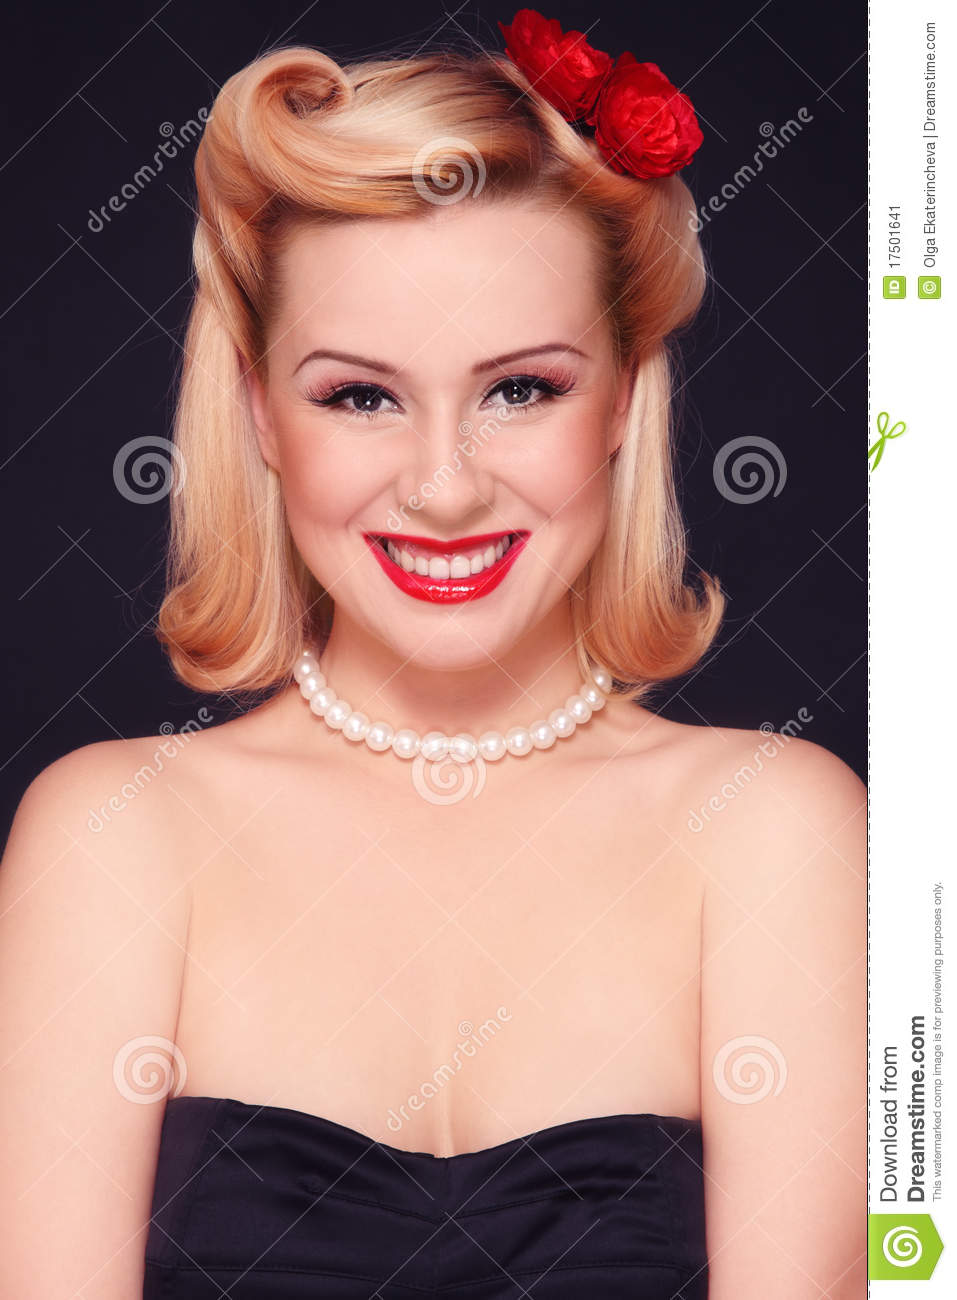 Pin Up Girl Stock Image Image Of Groomed Glam Blond 17501641